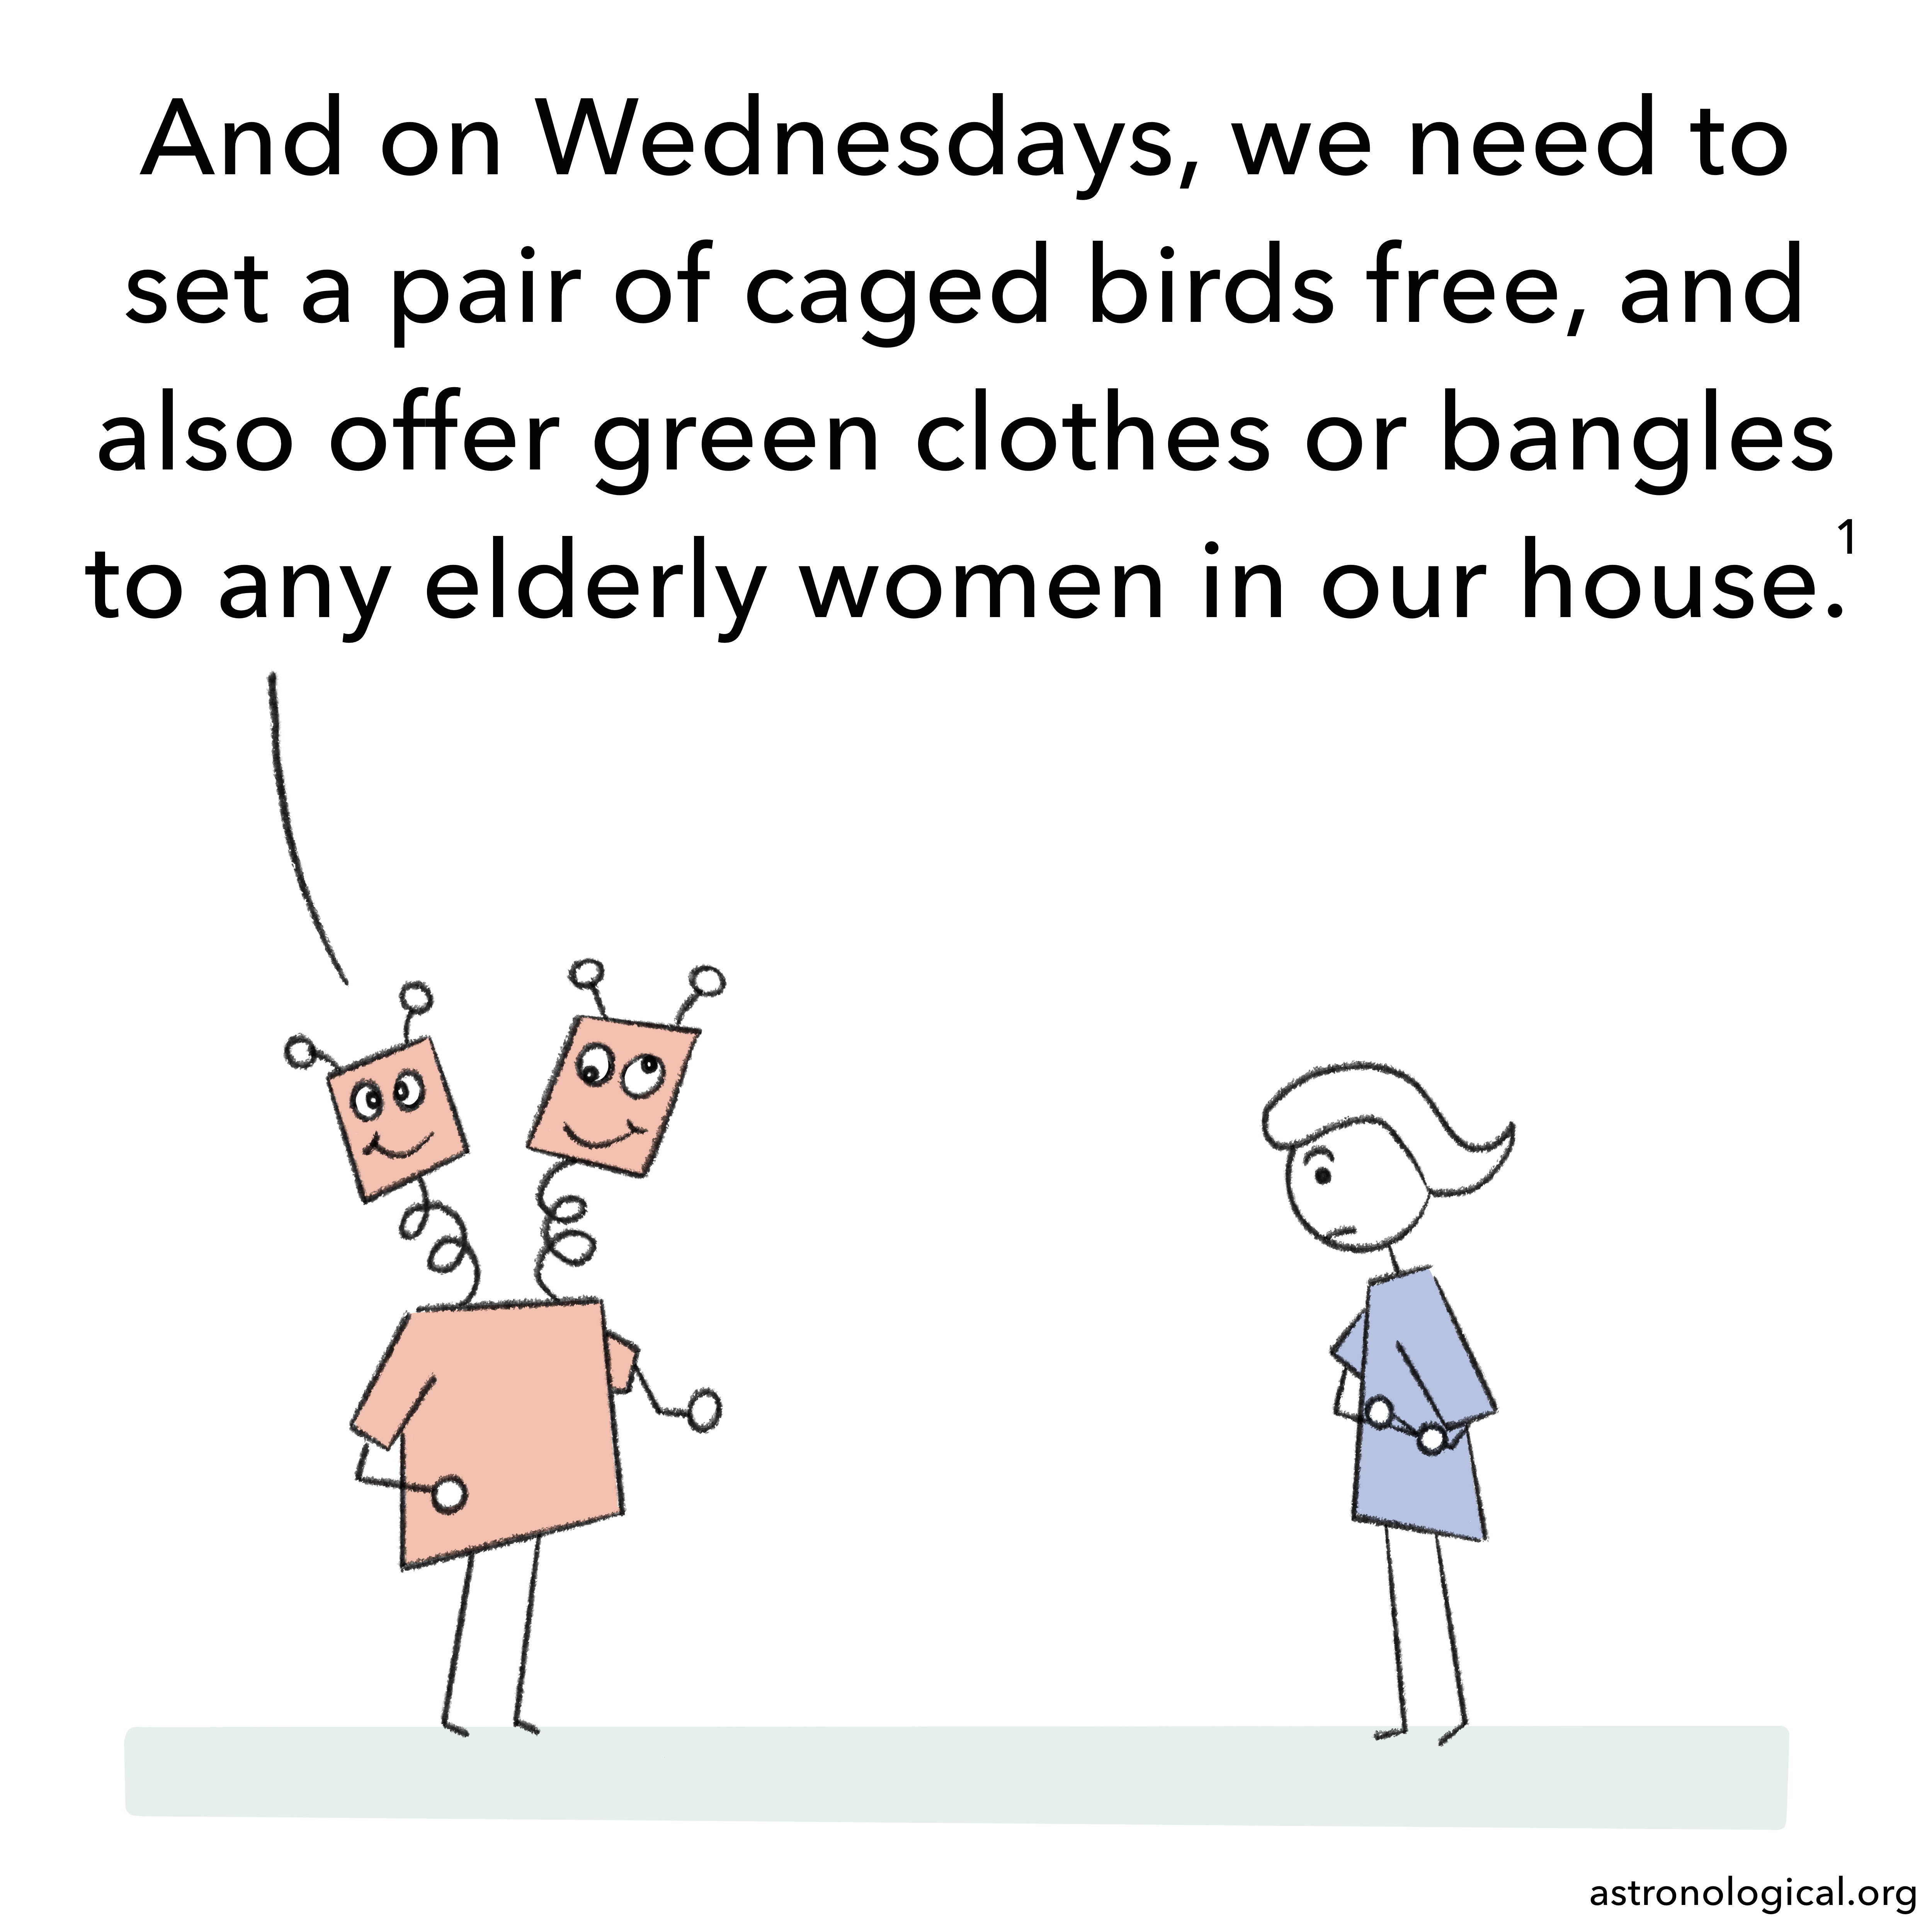 The other twin adds: And on Wednesdays, we need to set a pair of caged birds free, and also offer green clothes or bangles to any elderly women in our house. The girl still has her eyebrows raised.